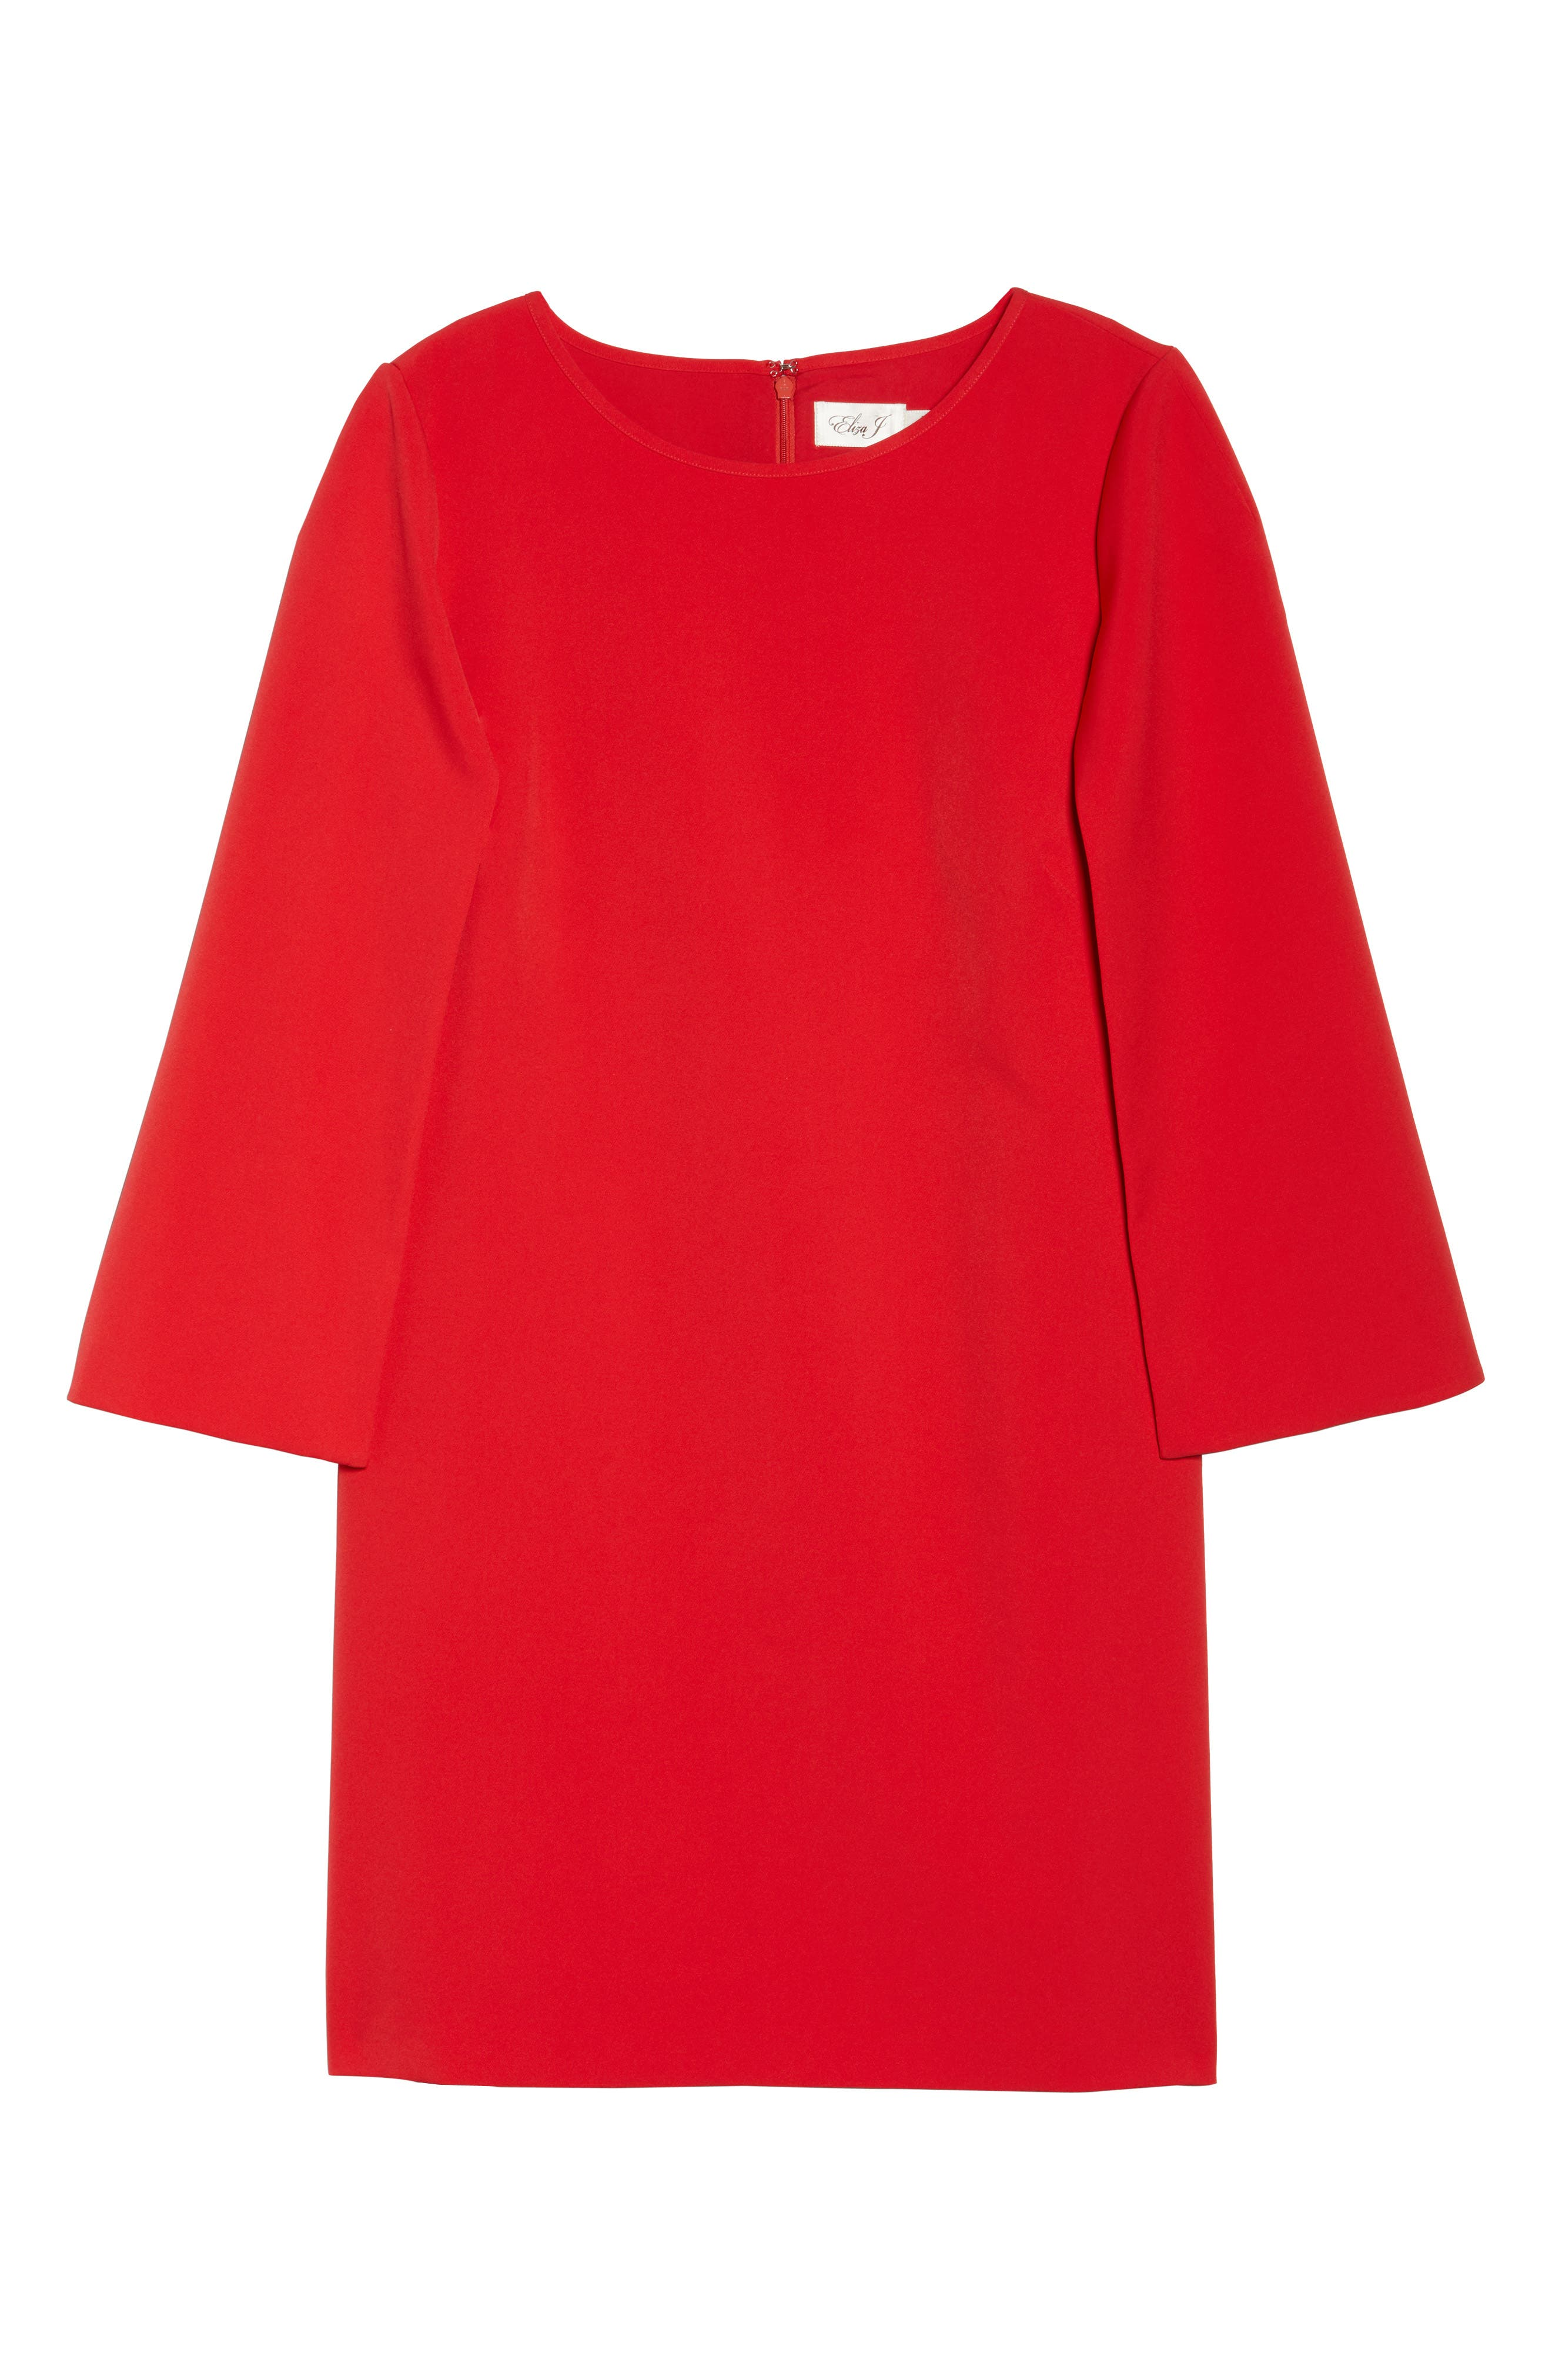 Jewel Neck Cape Sleeve Dress,                             Alternate thumbnail 7, color,                             Red